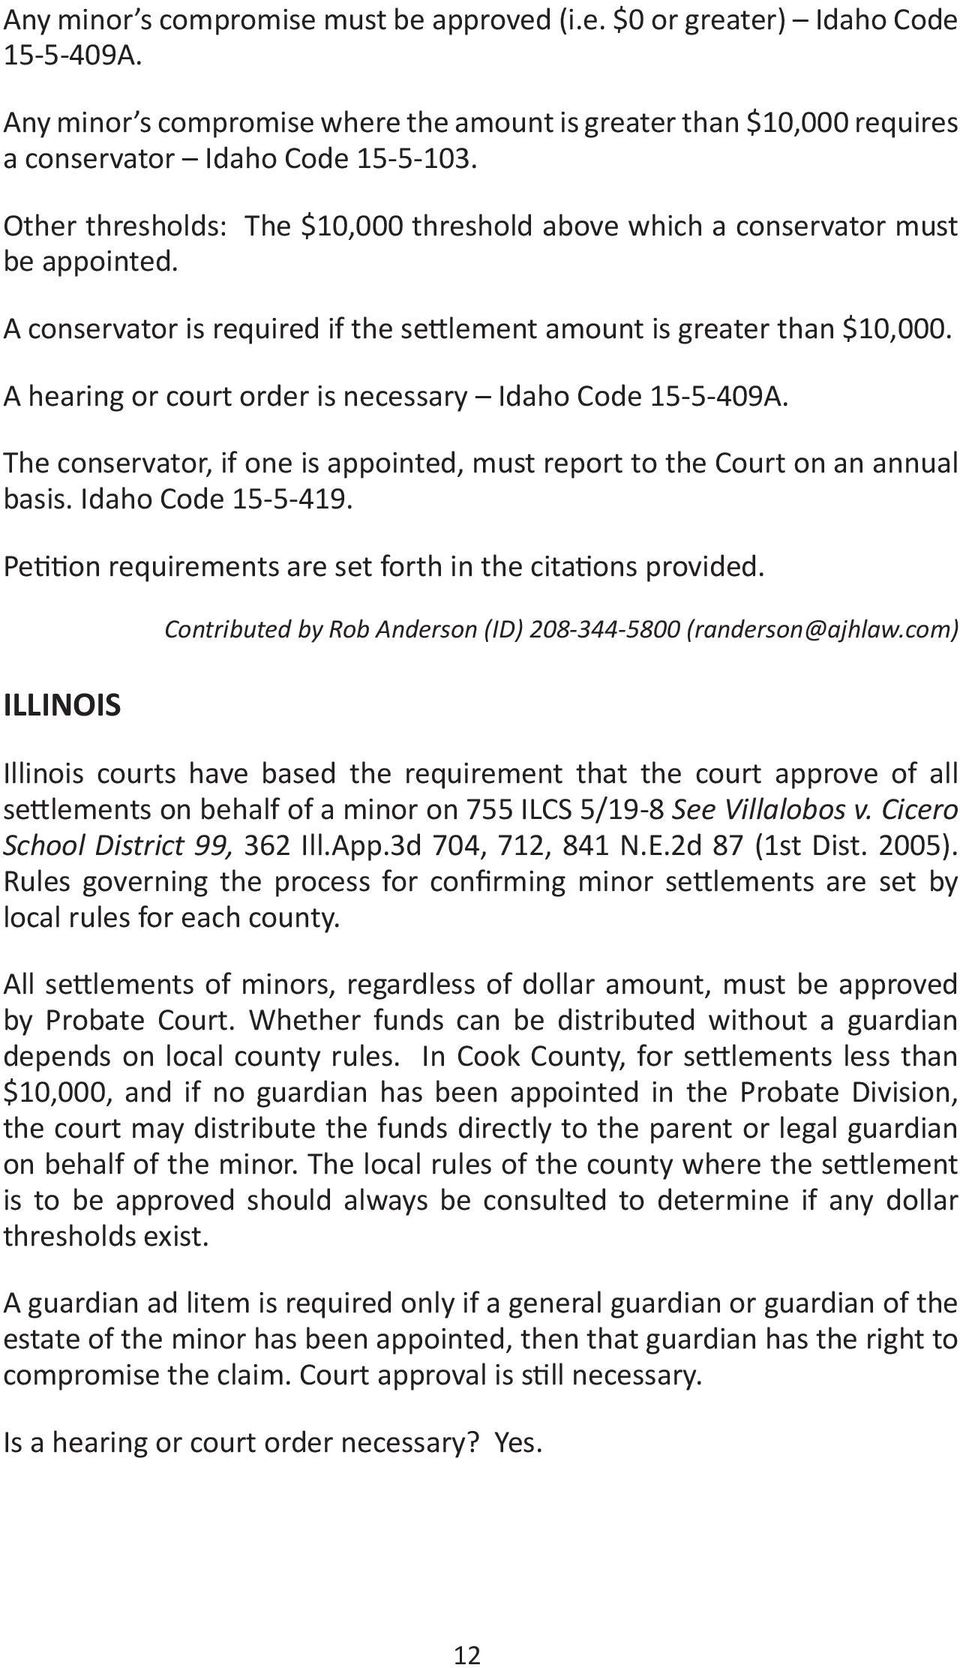 A hearing or court order is necessary Idaho Code 15-5-409A. The conservator, if one is appointed, must report to the Court on an annual basis. Idaho Code 15-5-419.